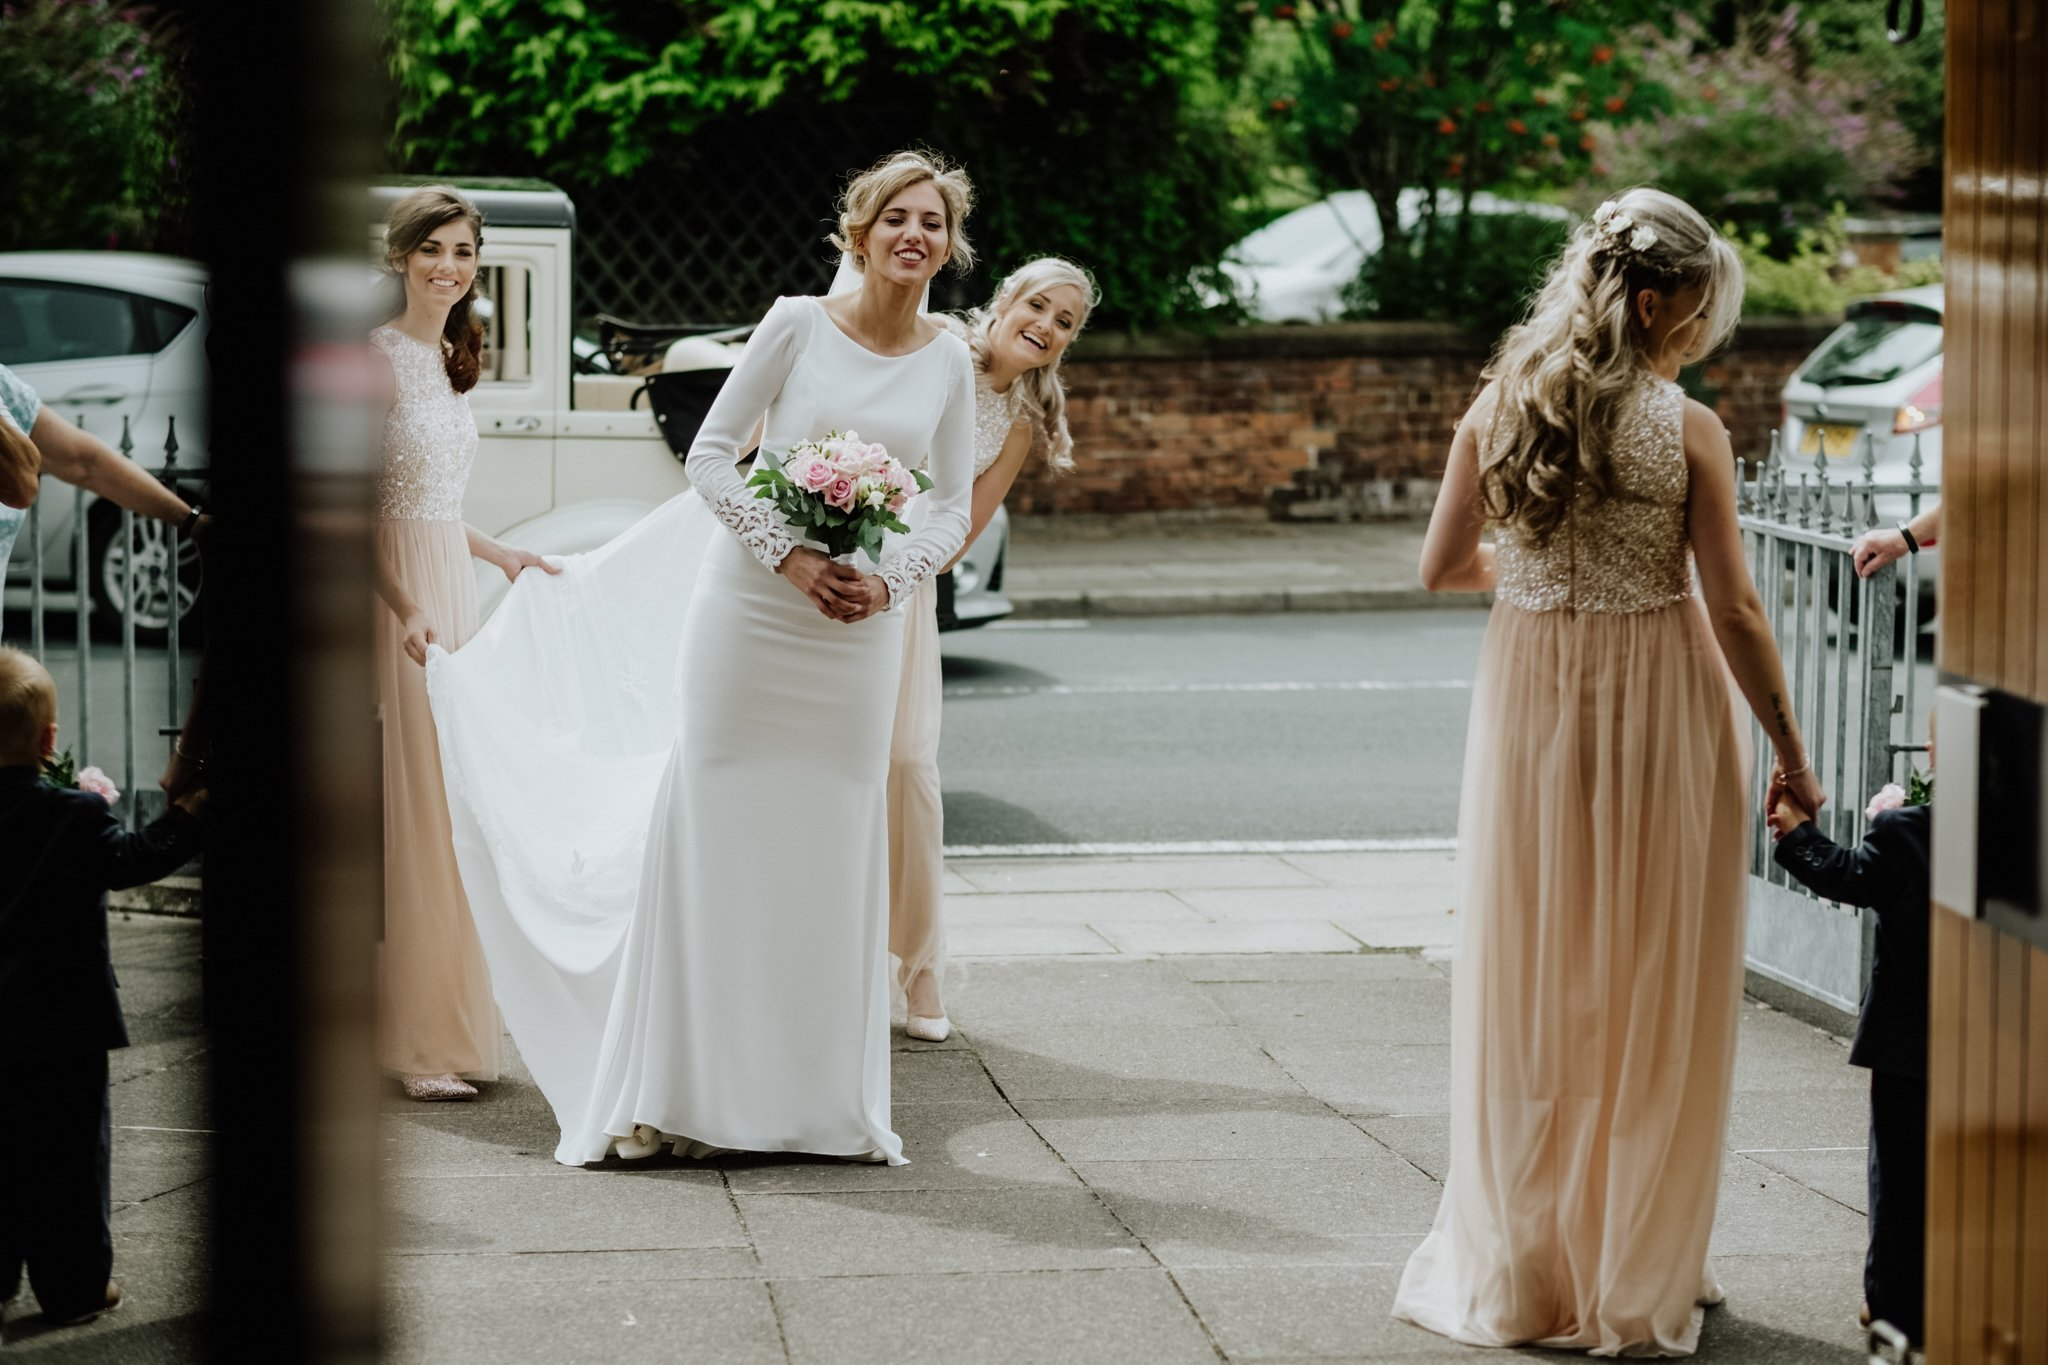 Liverpool-wedding-photographer-539